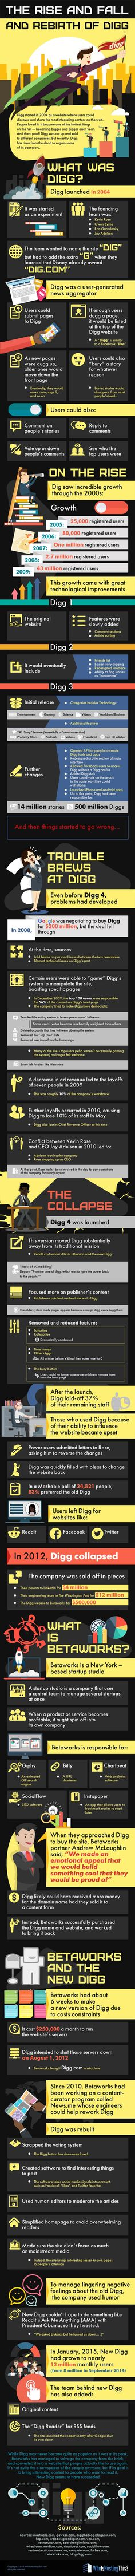 The Rise, Fall and Rebirth of Digg Infographic. Topic: Social media, news aggregation site, social network, web 2.0, reddit, internet.